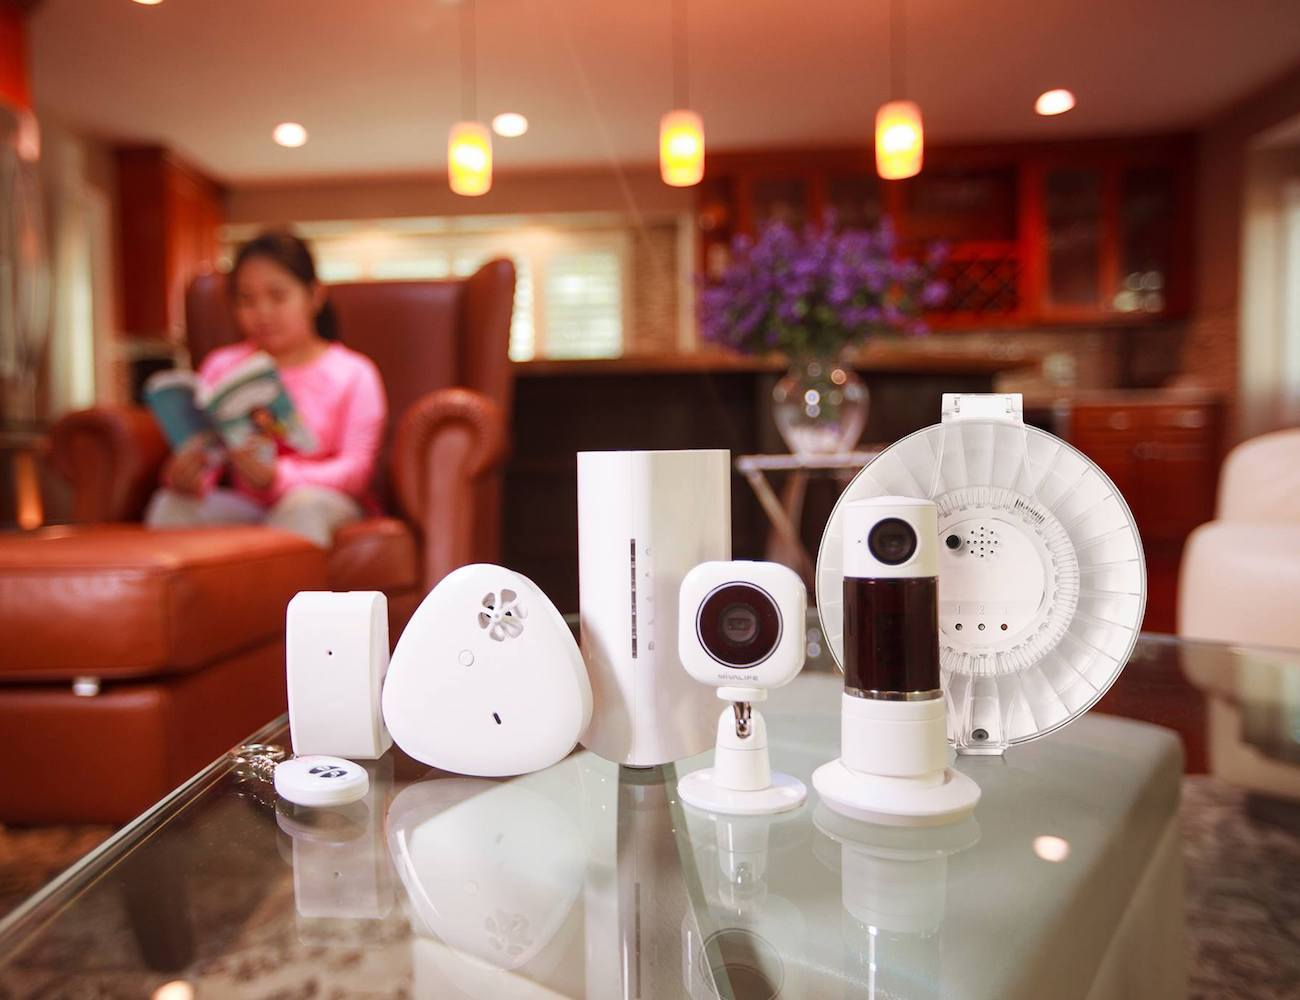 Home8 Wireless Home Security System